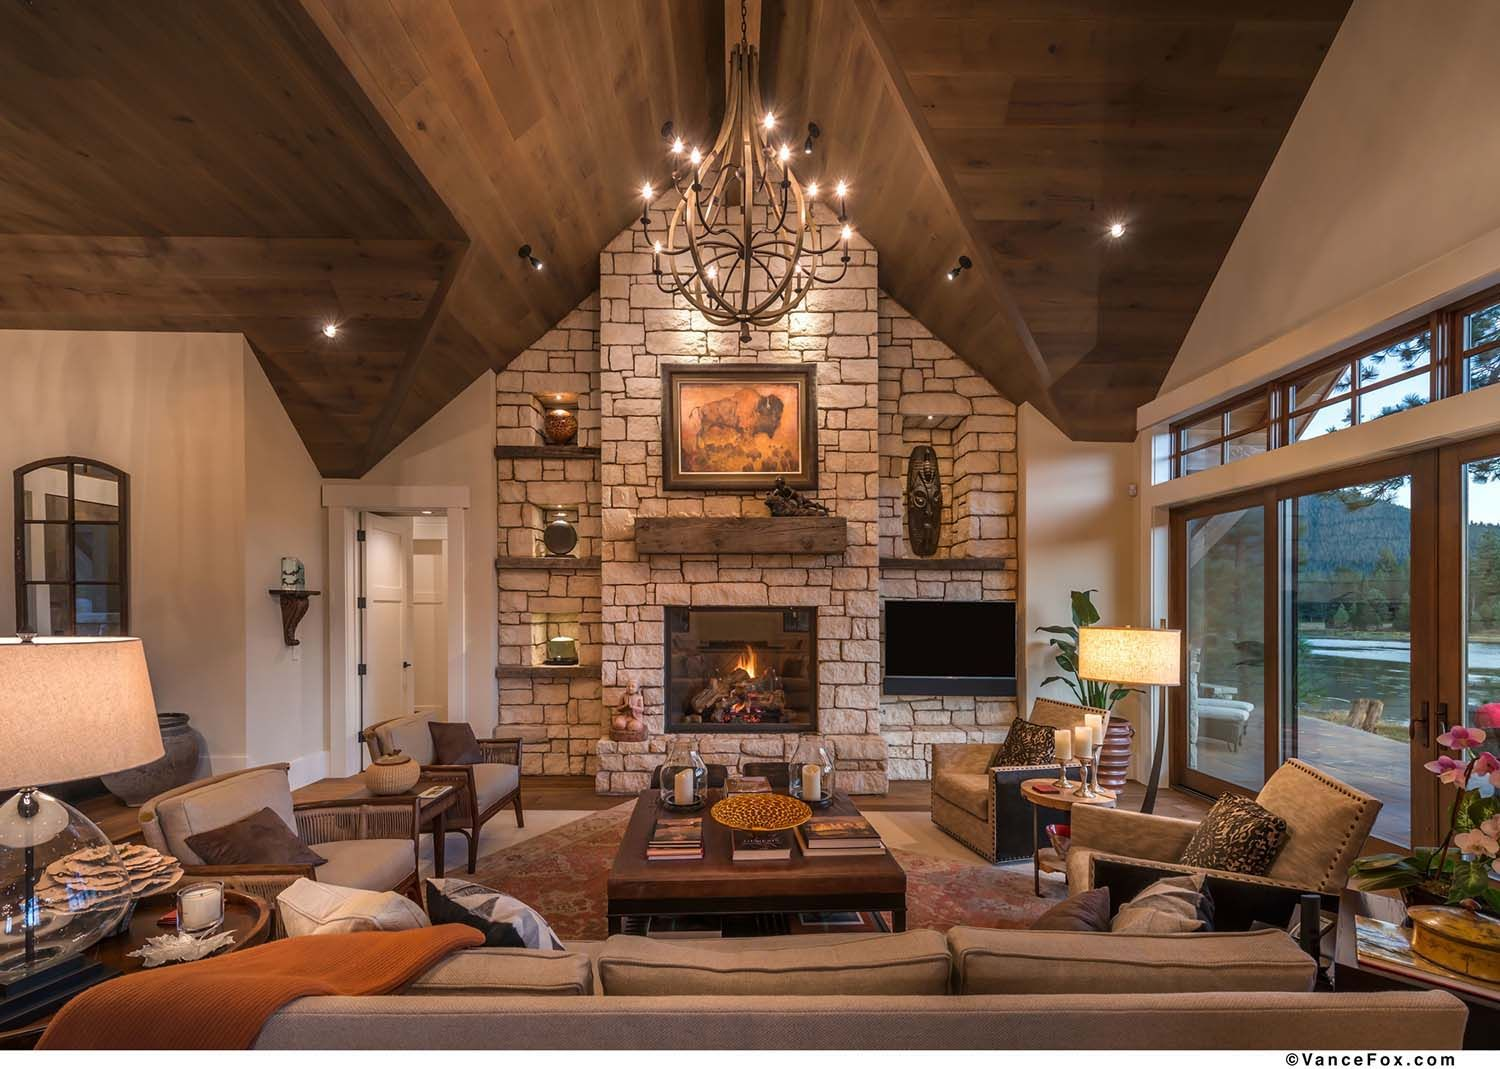 10+ Top Rustic Lake House Living Room